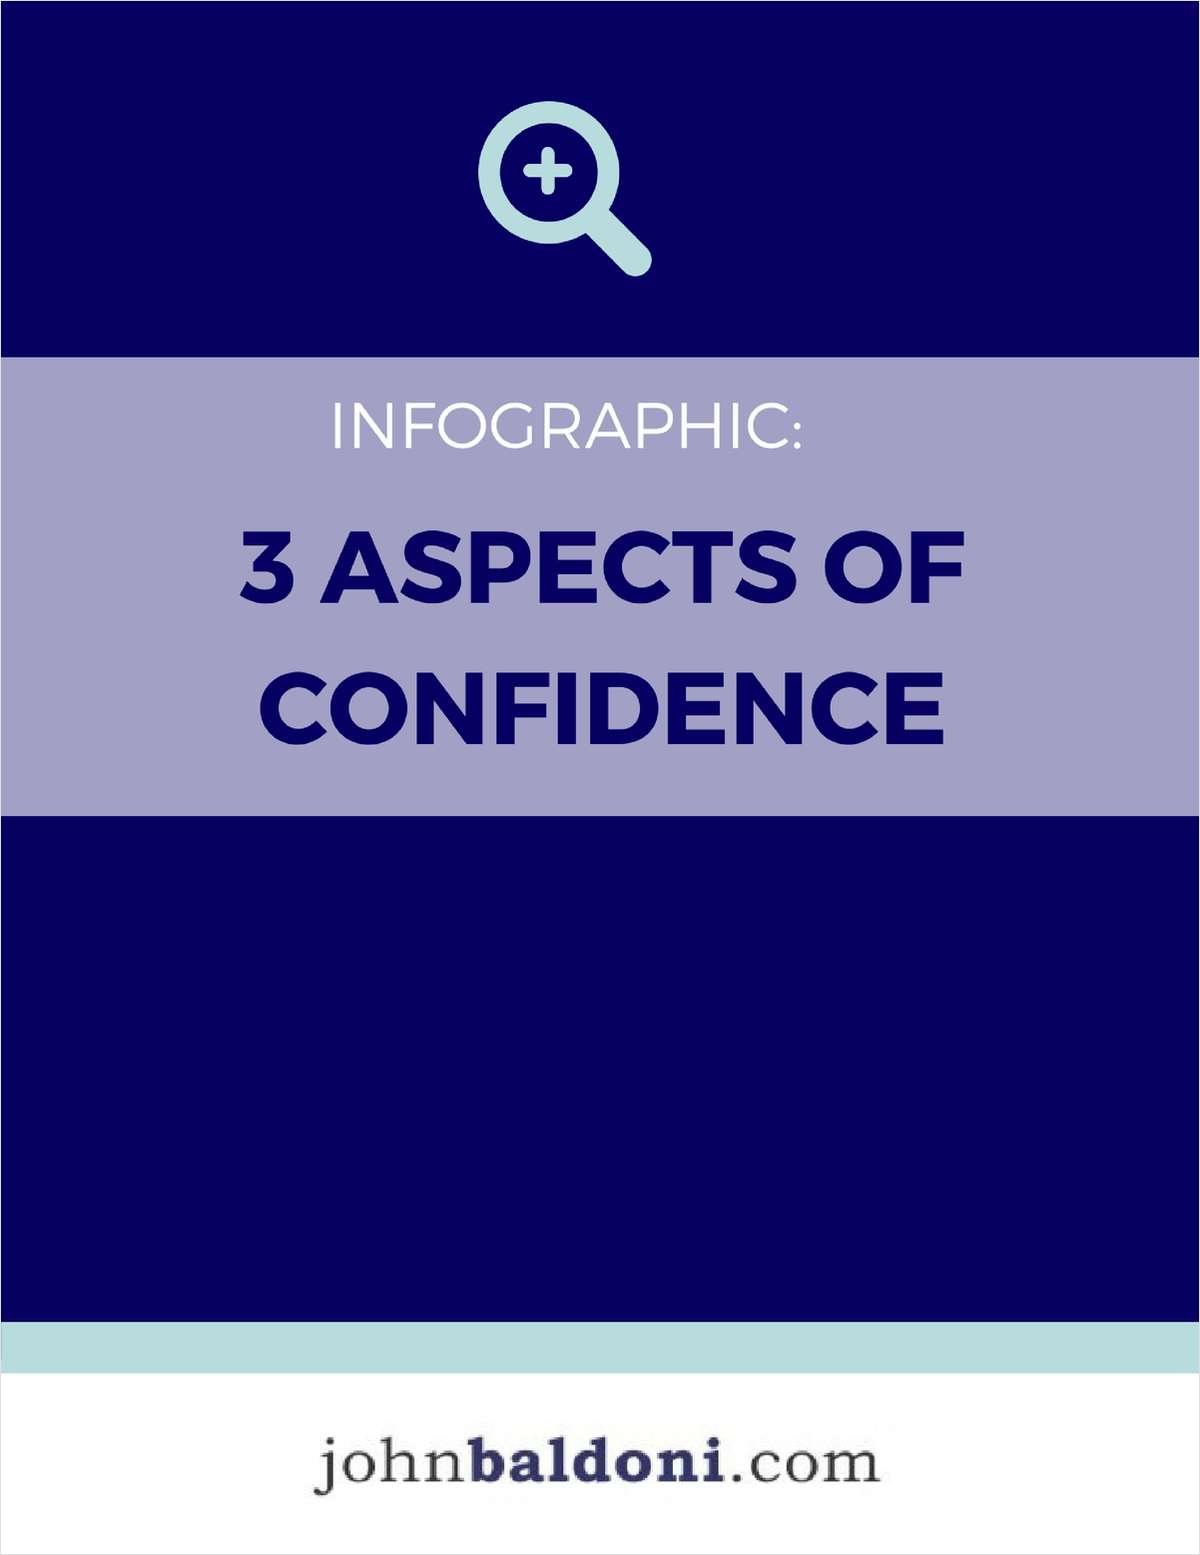 3 Aspects of Confidence